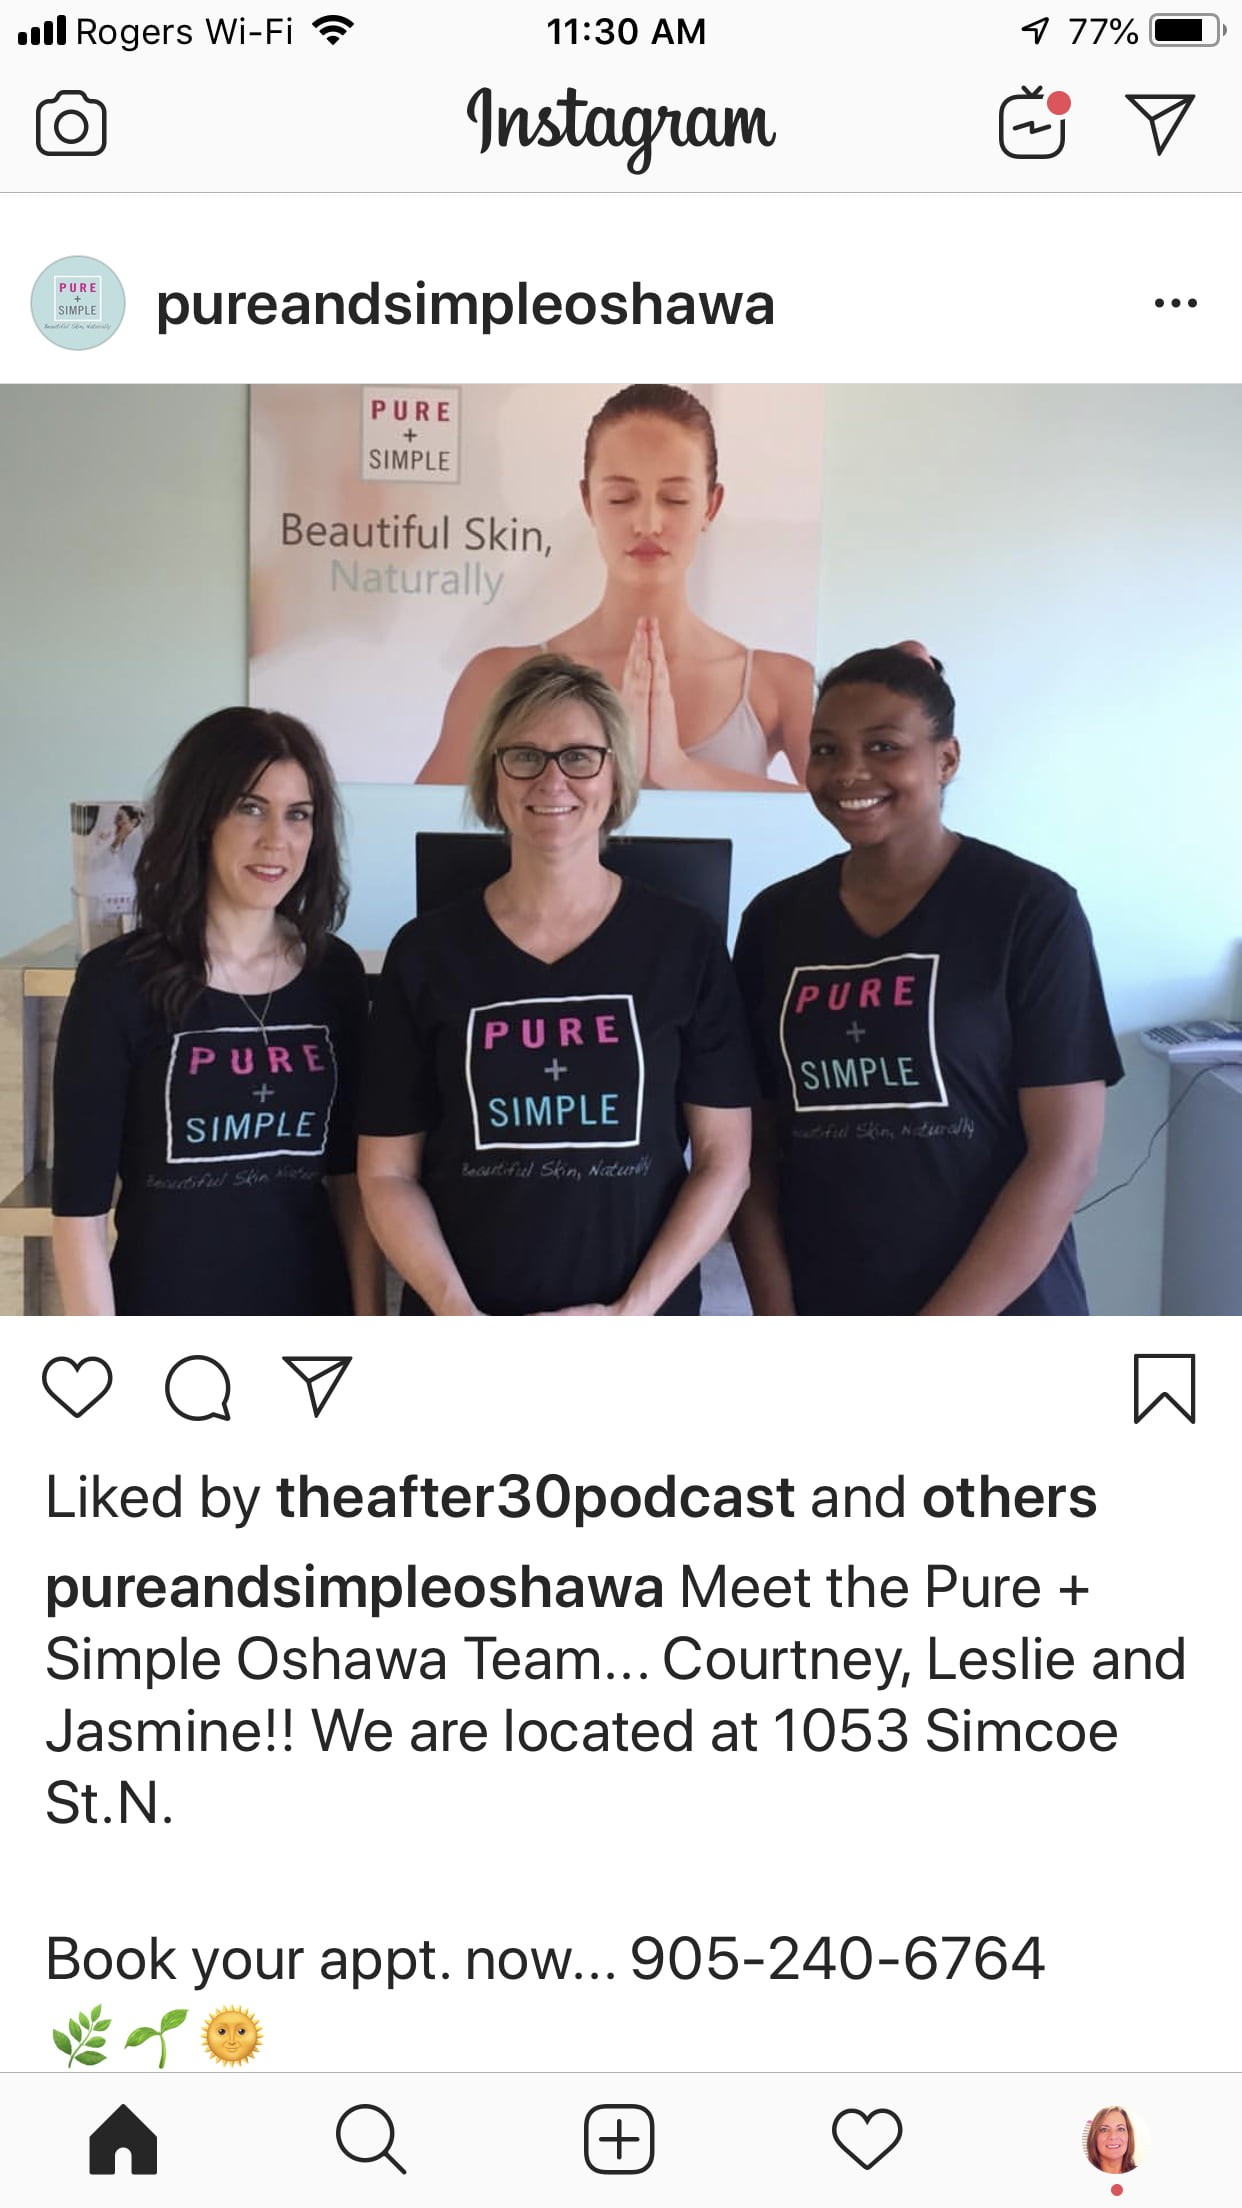 The Team at Pure + Simple Oshawa